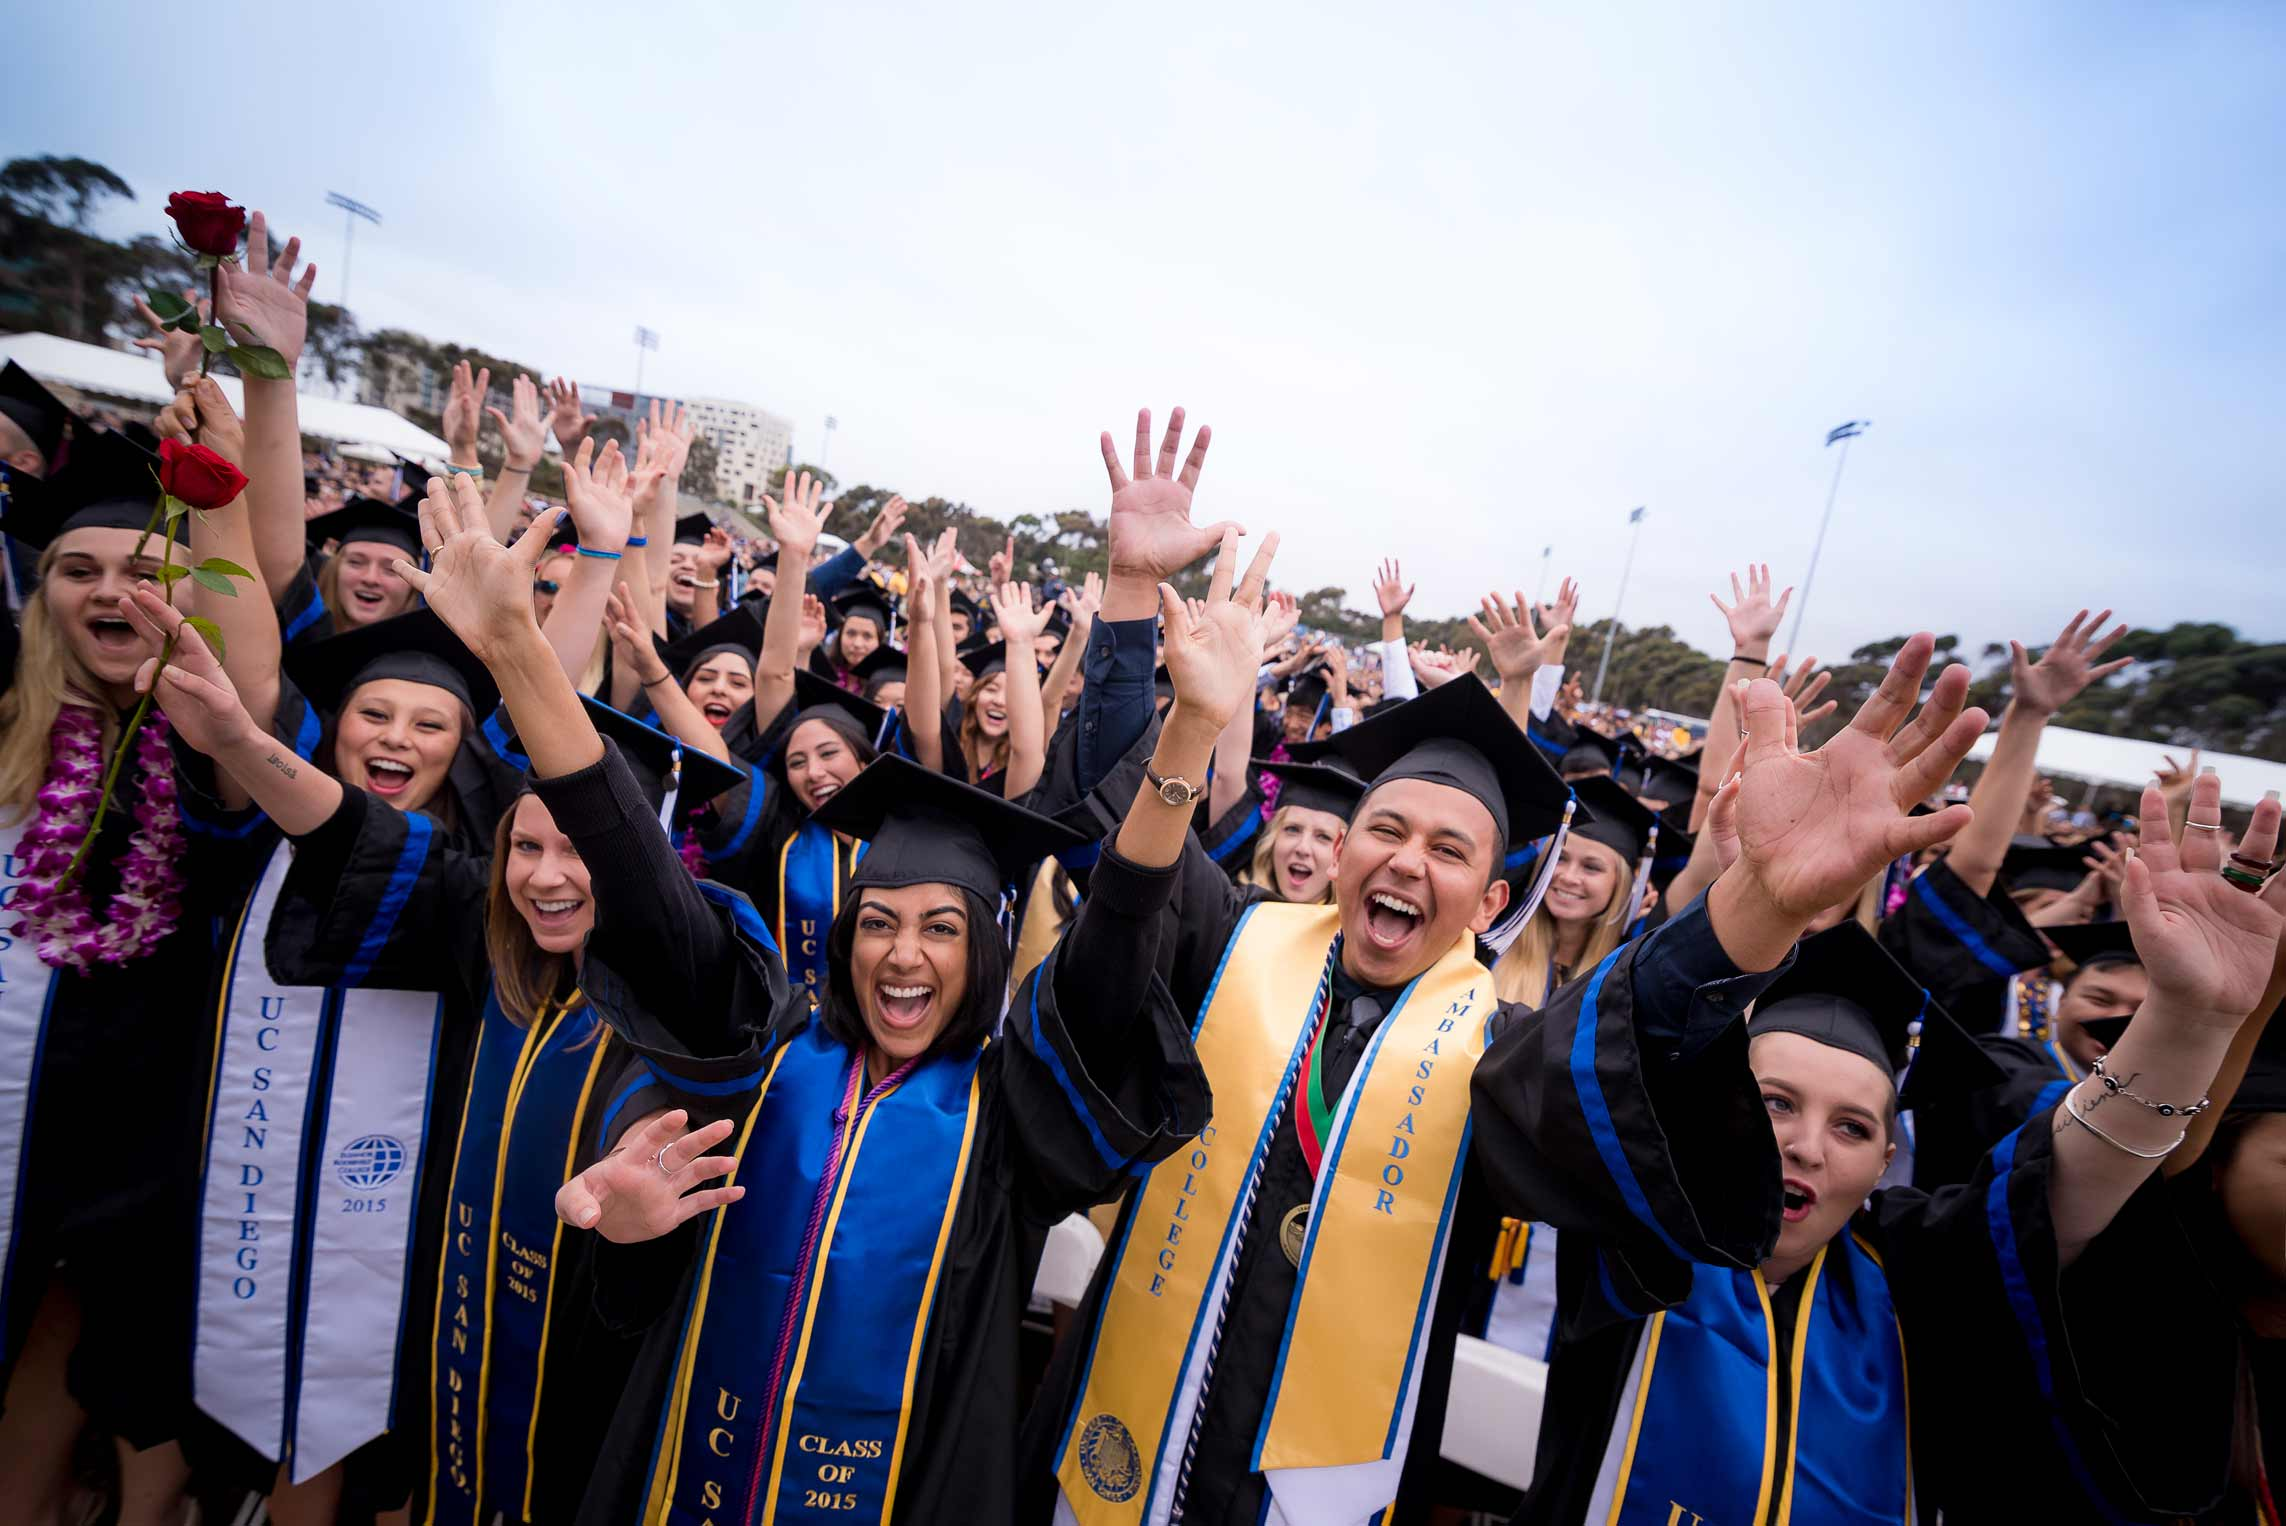 2015 Graduation Commencement Ceremonies